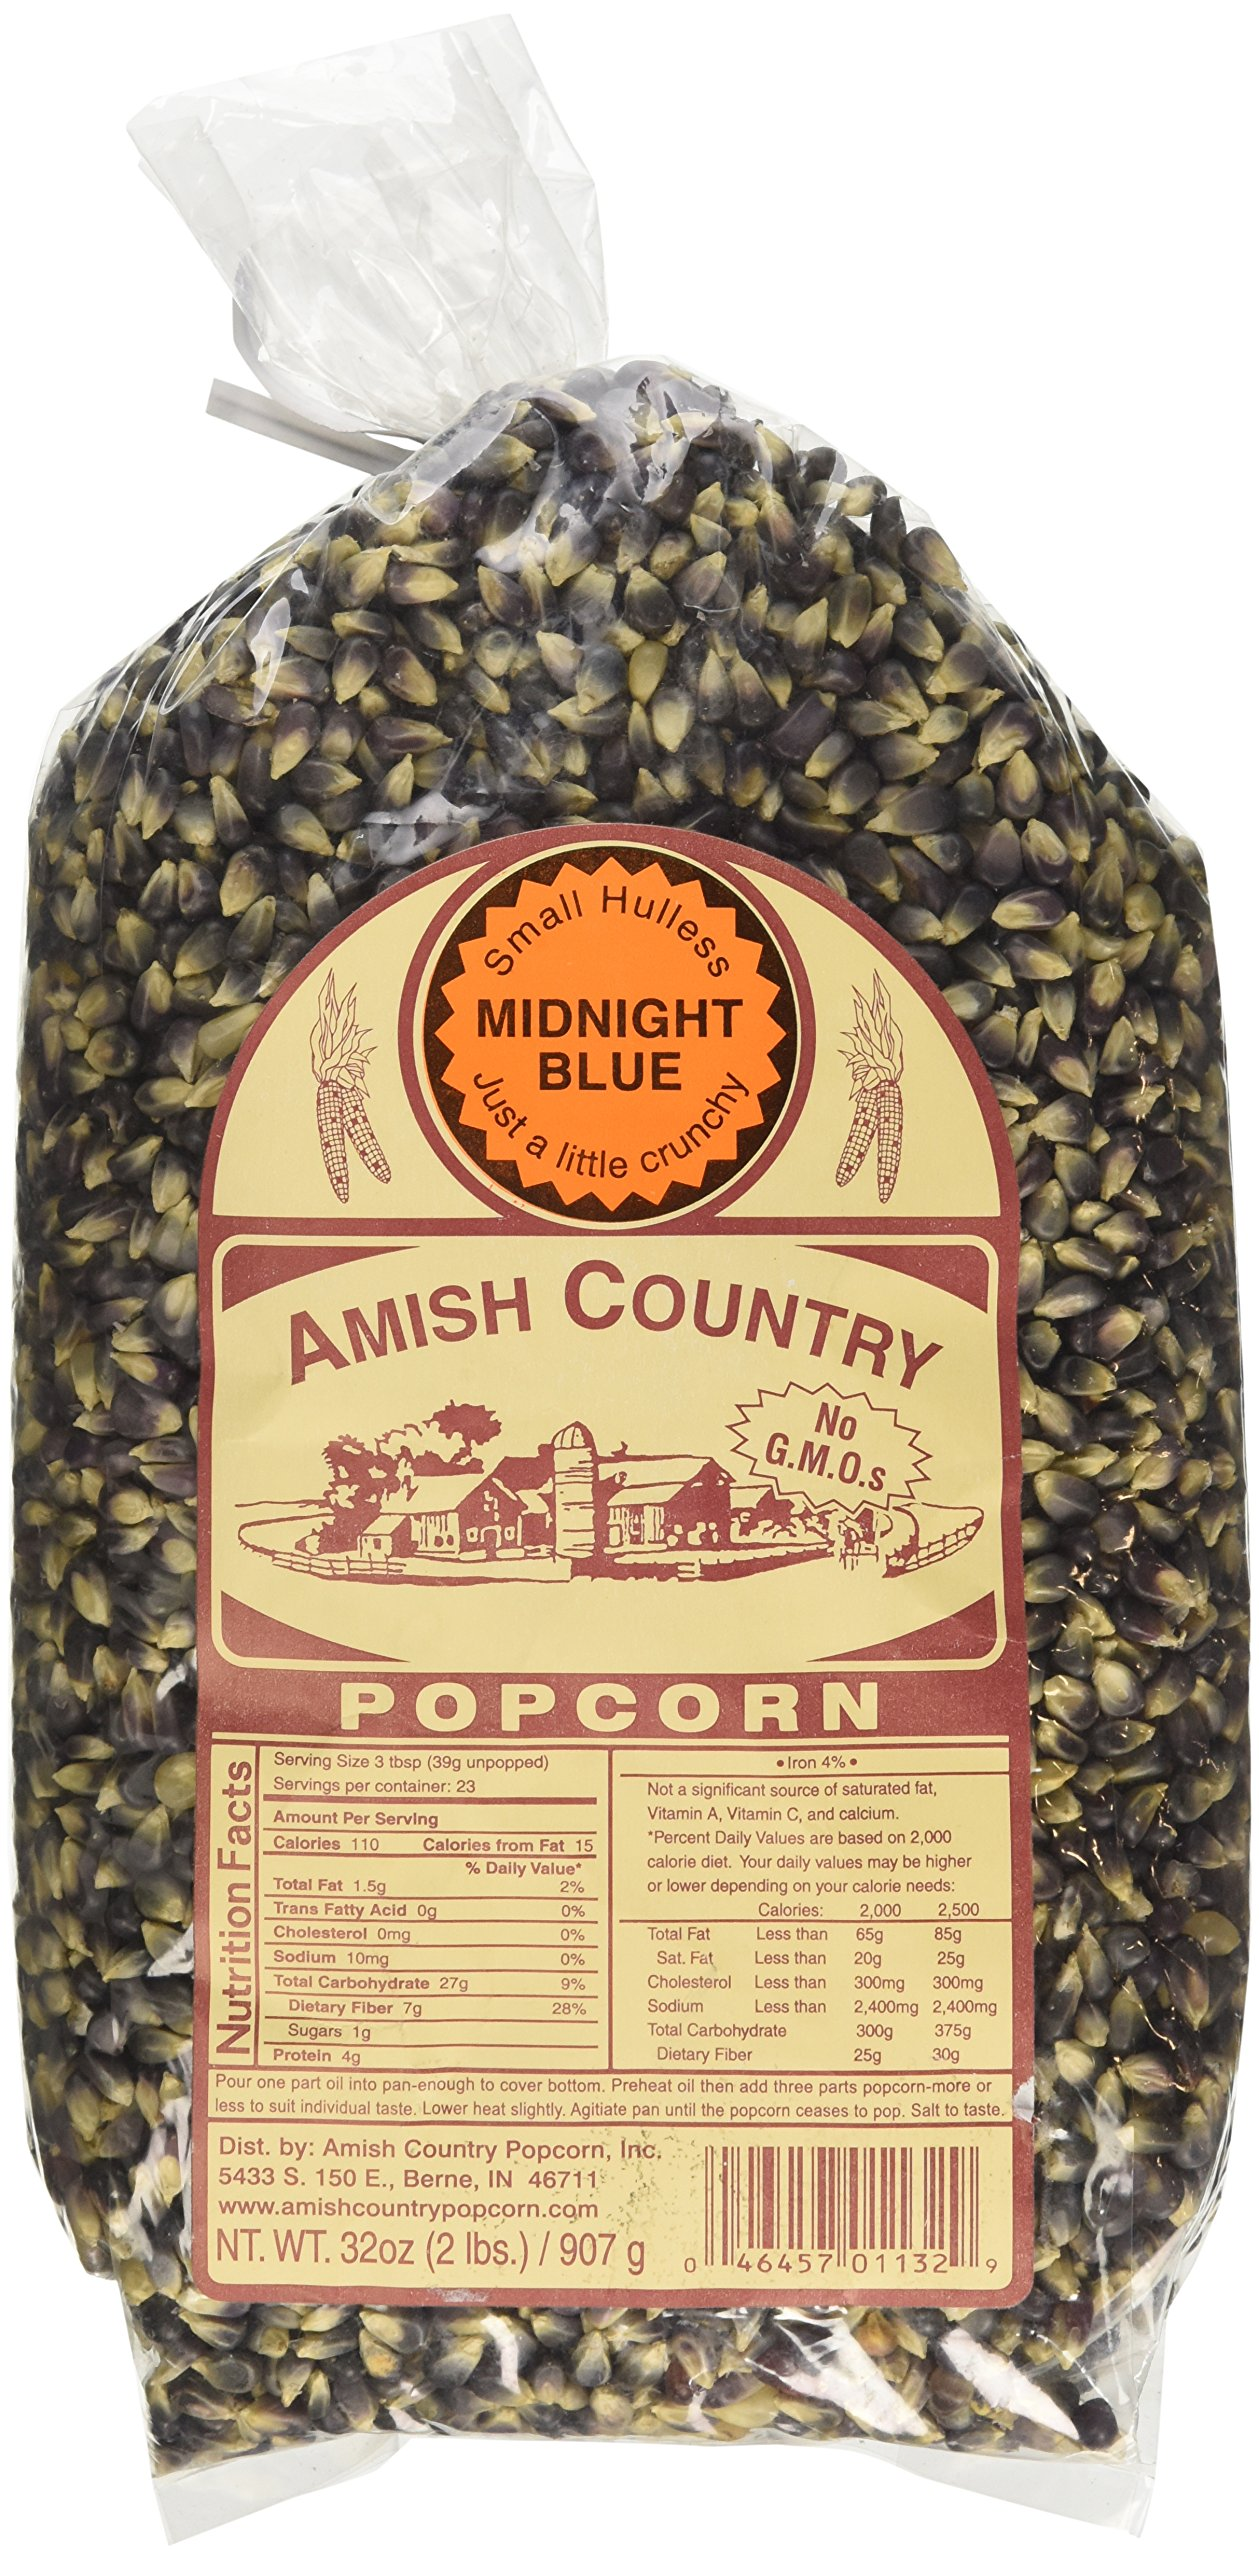 Amish Country Popcorn - Midnight Blue Popcorn- 2 lb Bag Old Fashioned, Non GMO, Gluten Free, Microwaveable, Stovetop and Air Popper Friendly